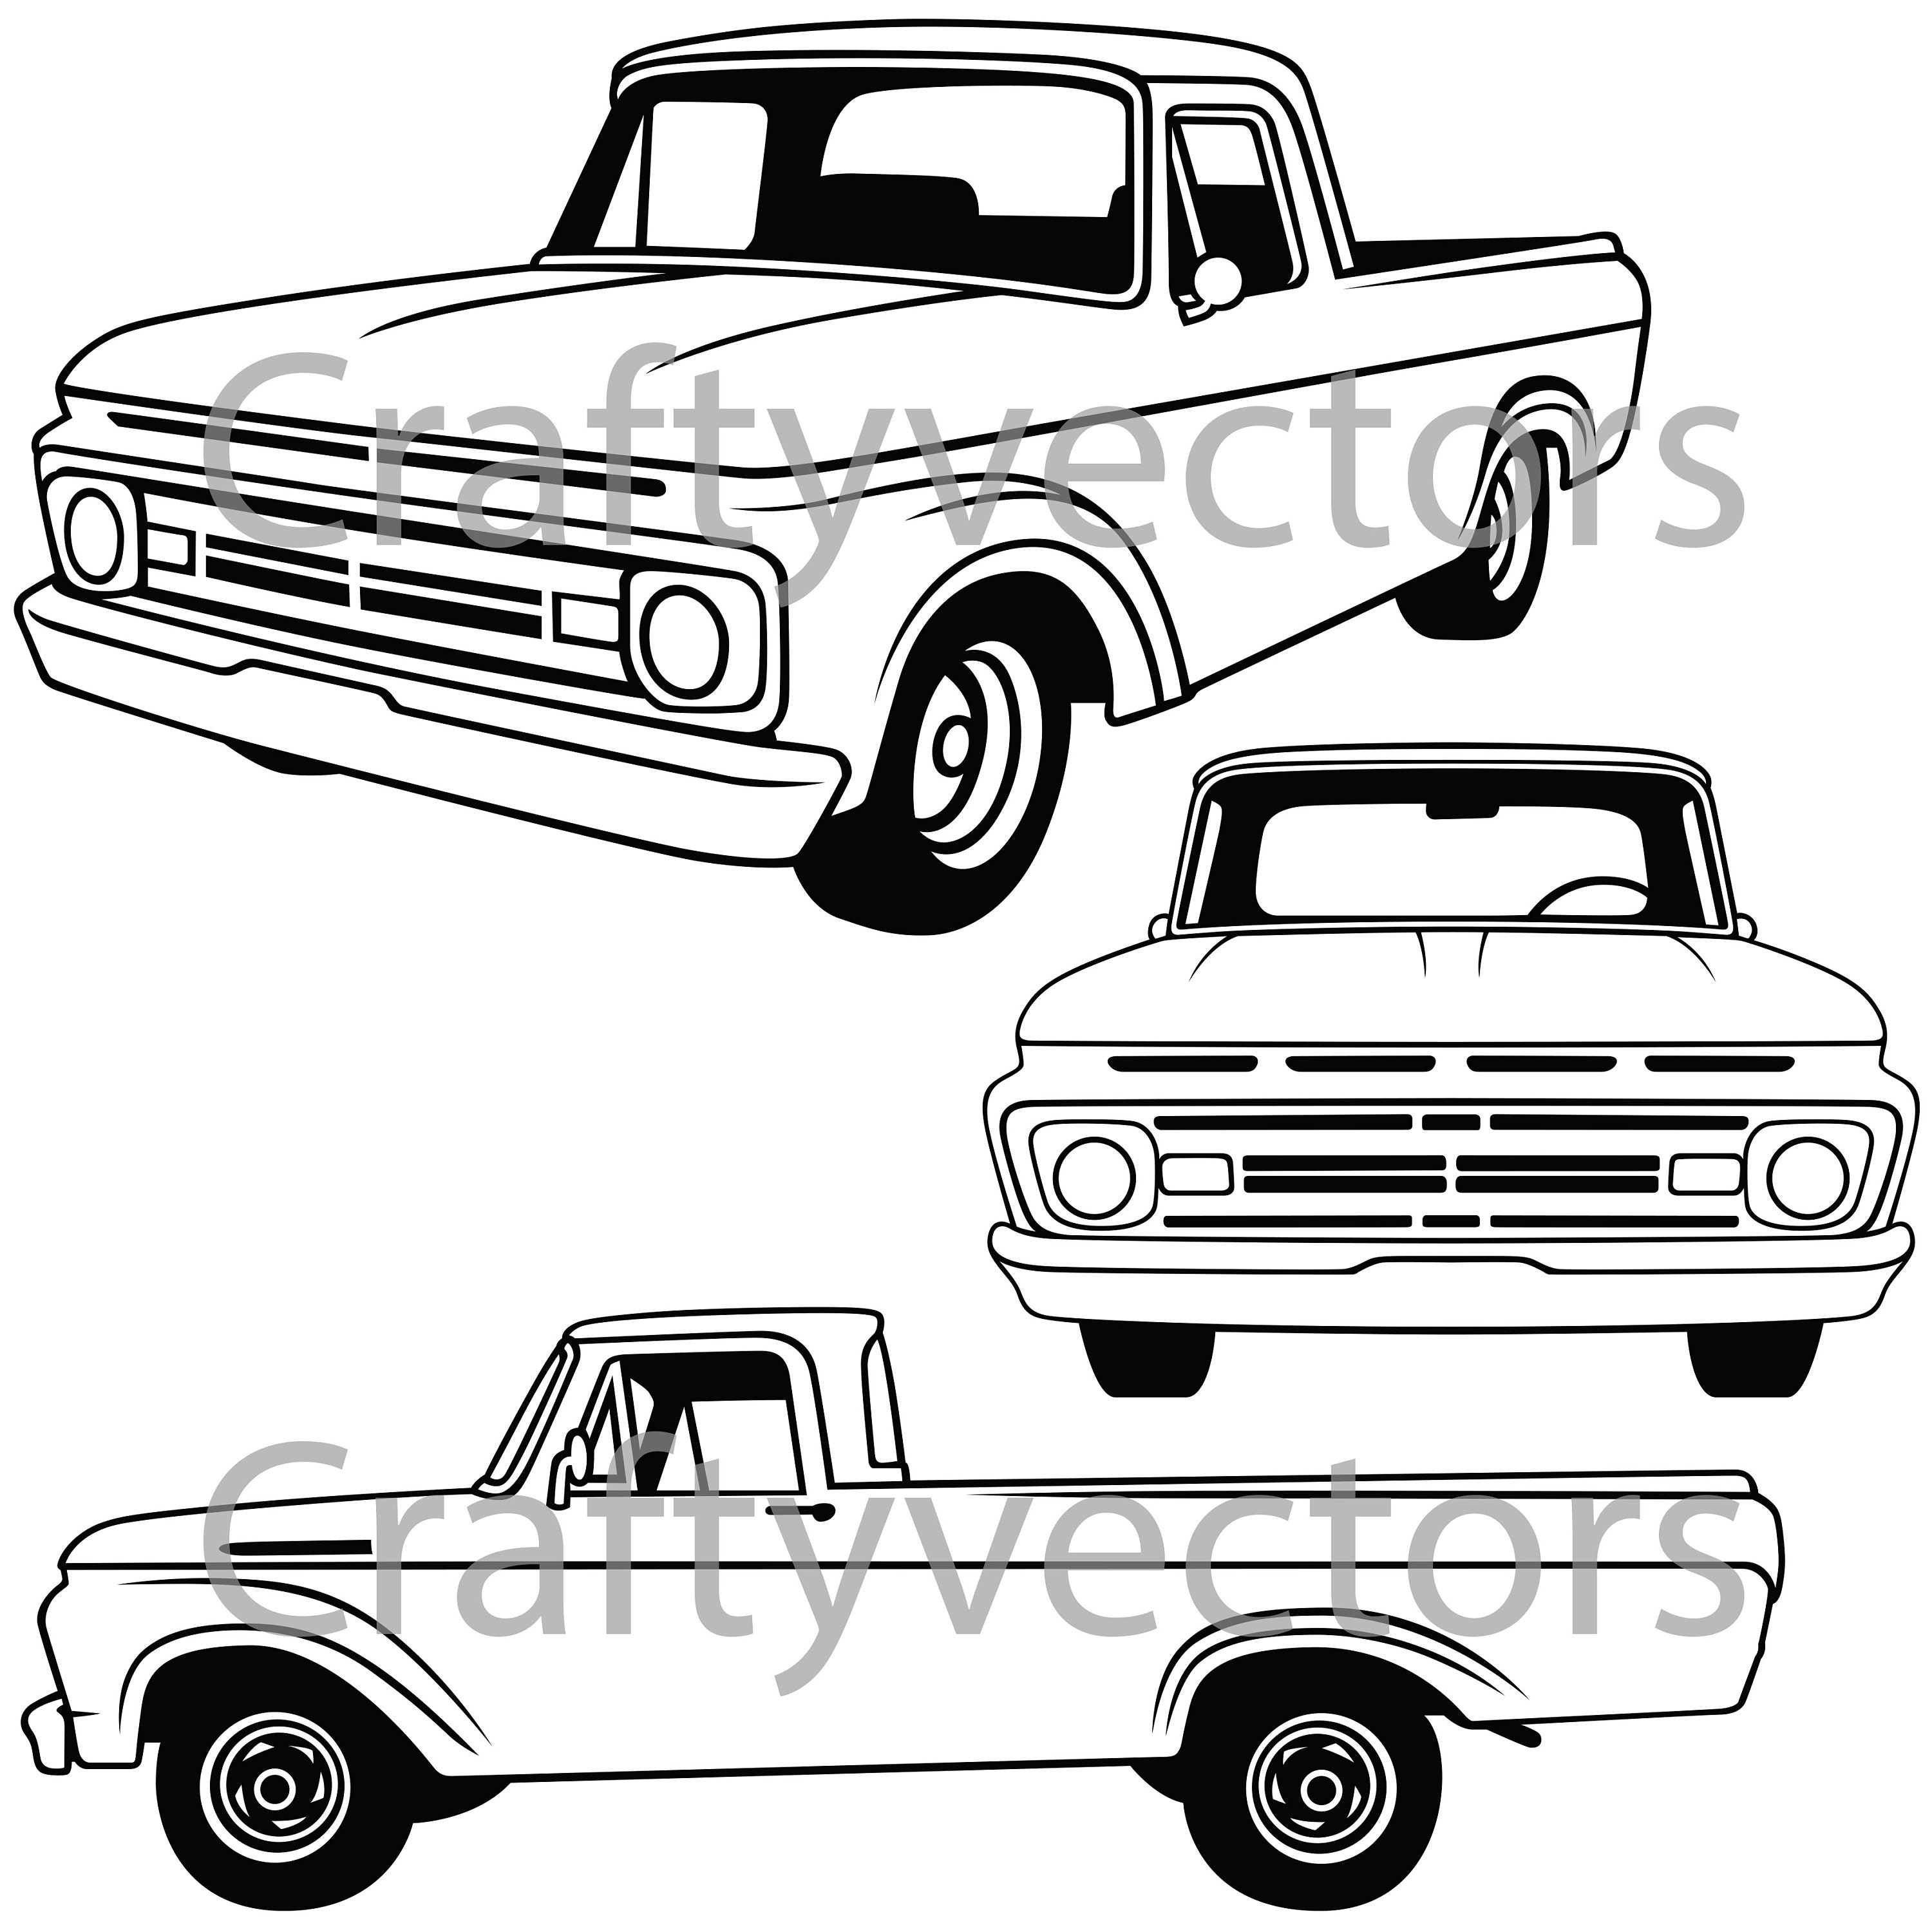 1960 ford f100 wiring diagram database 1969 Chevy Pickup Truck ford f100 1962 vector etsy 1977 ford f100 1960 ford f100